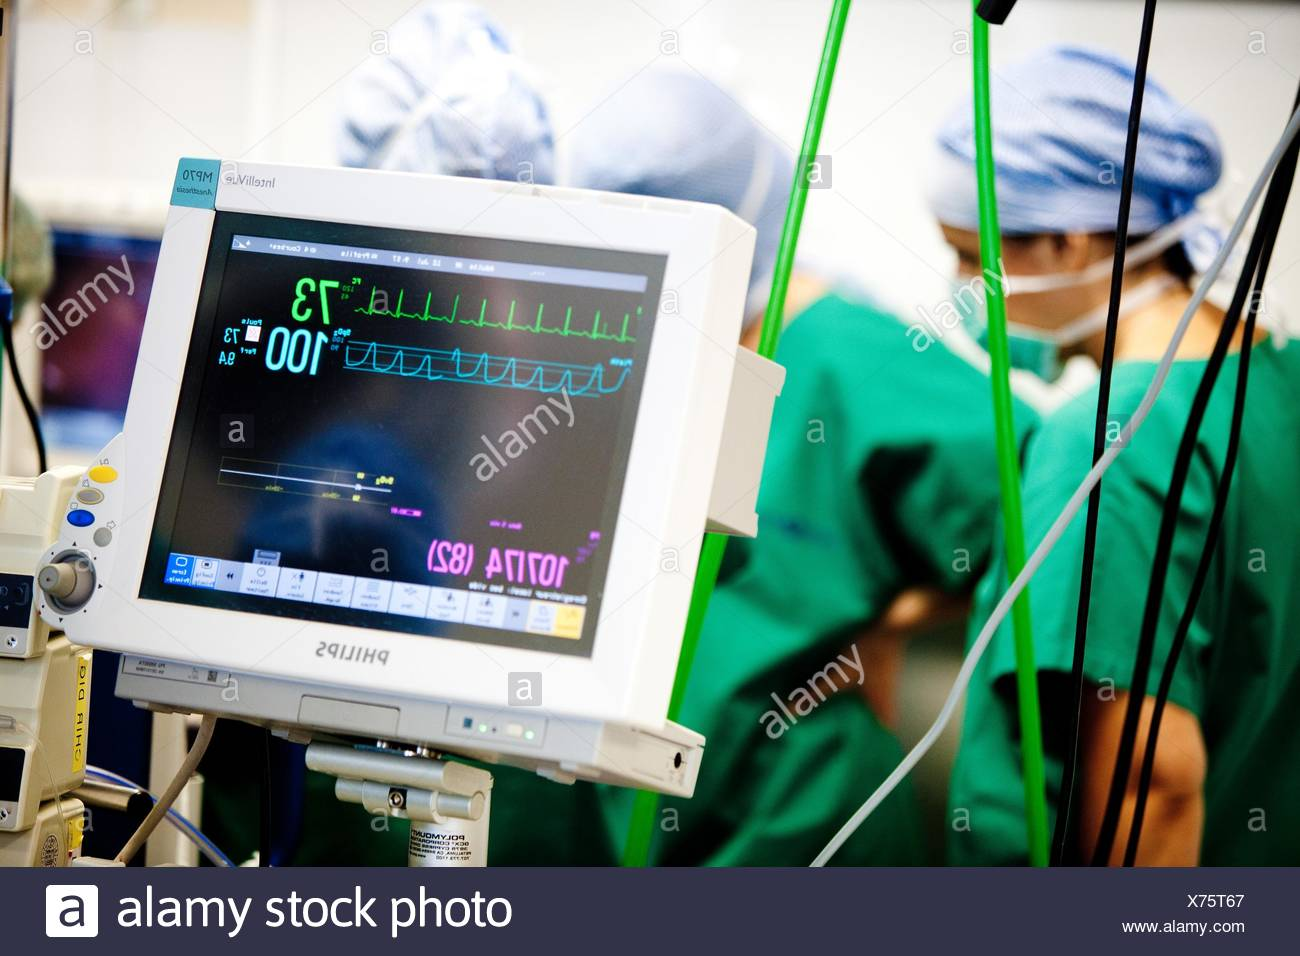 Anaesthetic monitoring equipment during surgery, St Antoine hospital